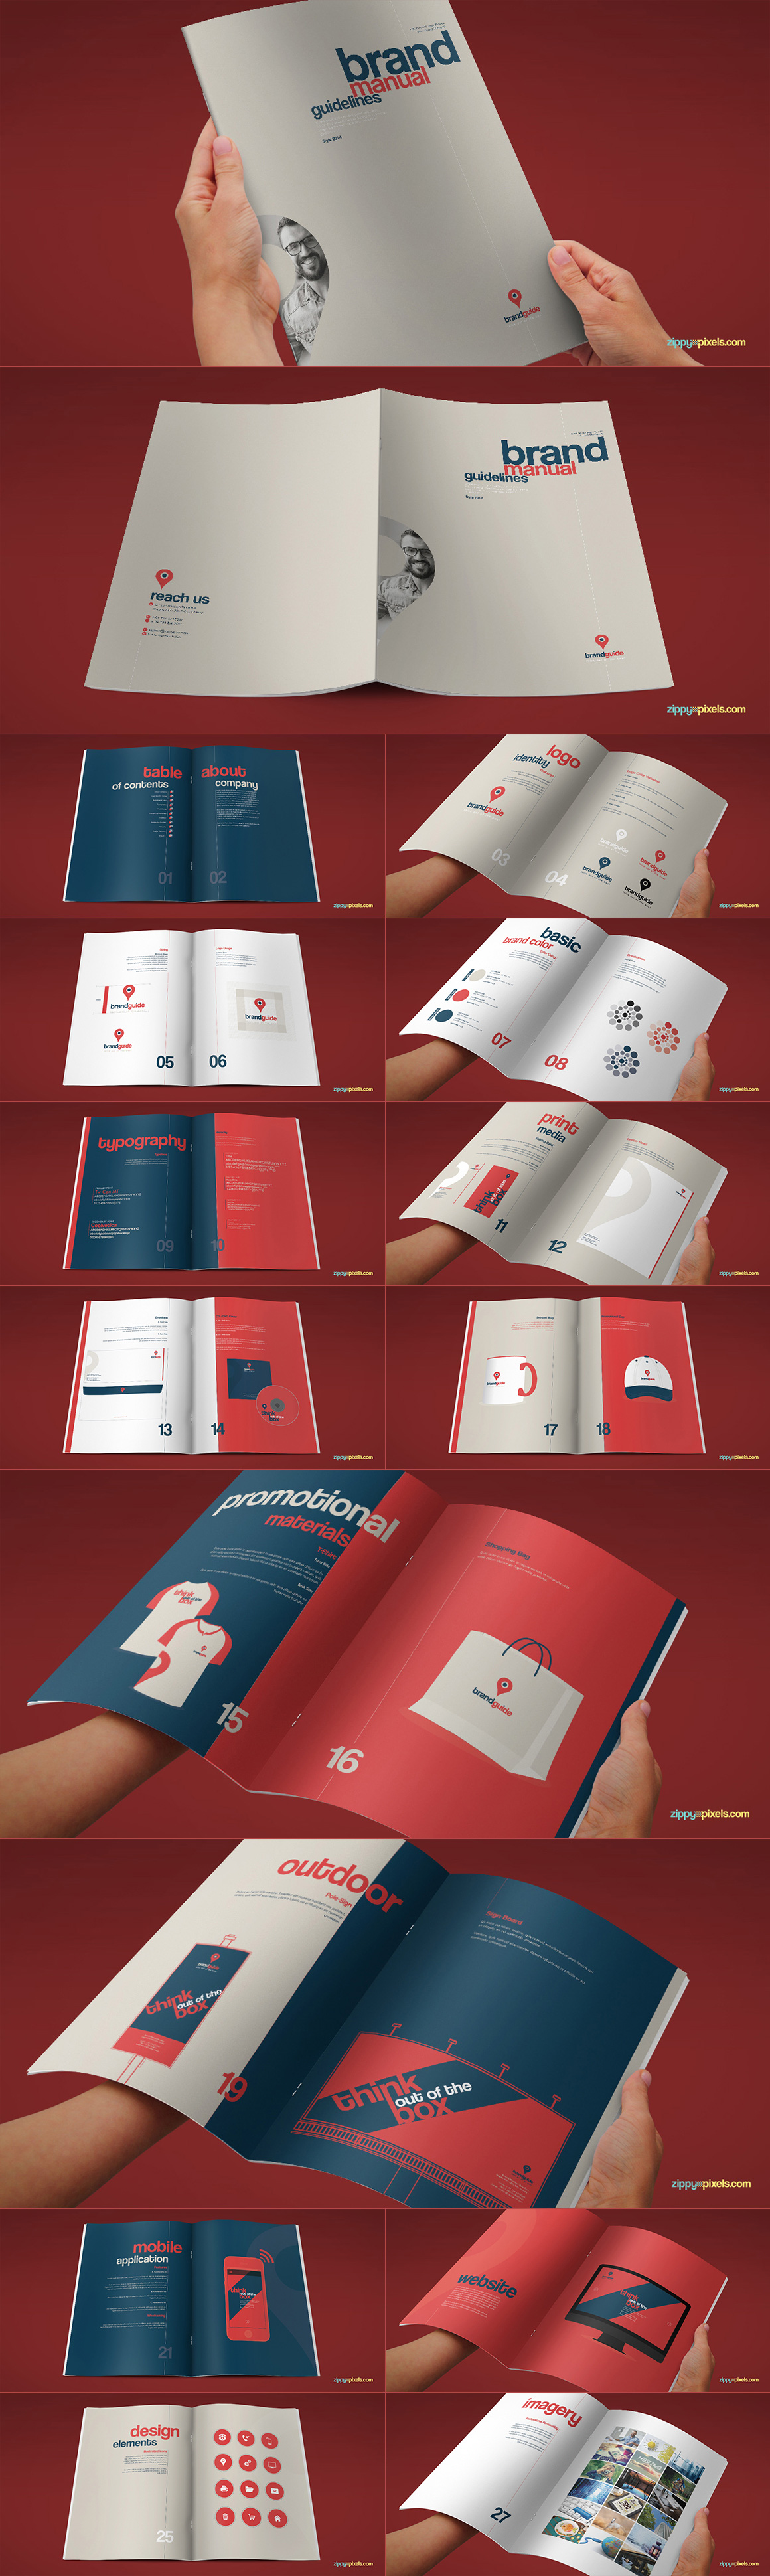 Style Guide & Brand Book Templates-strip6